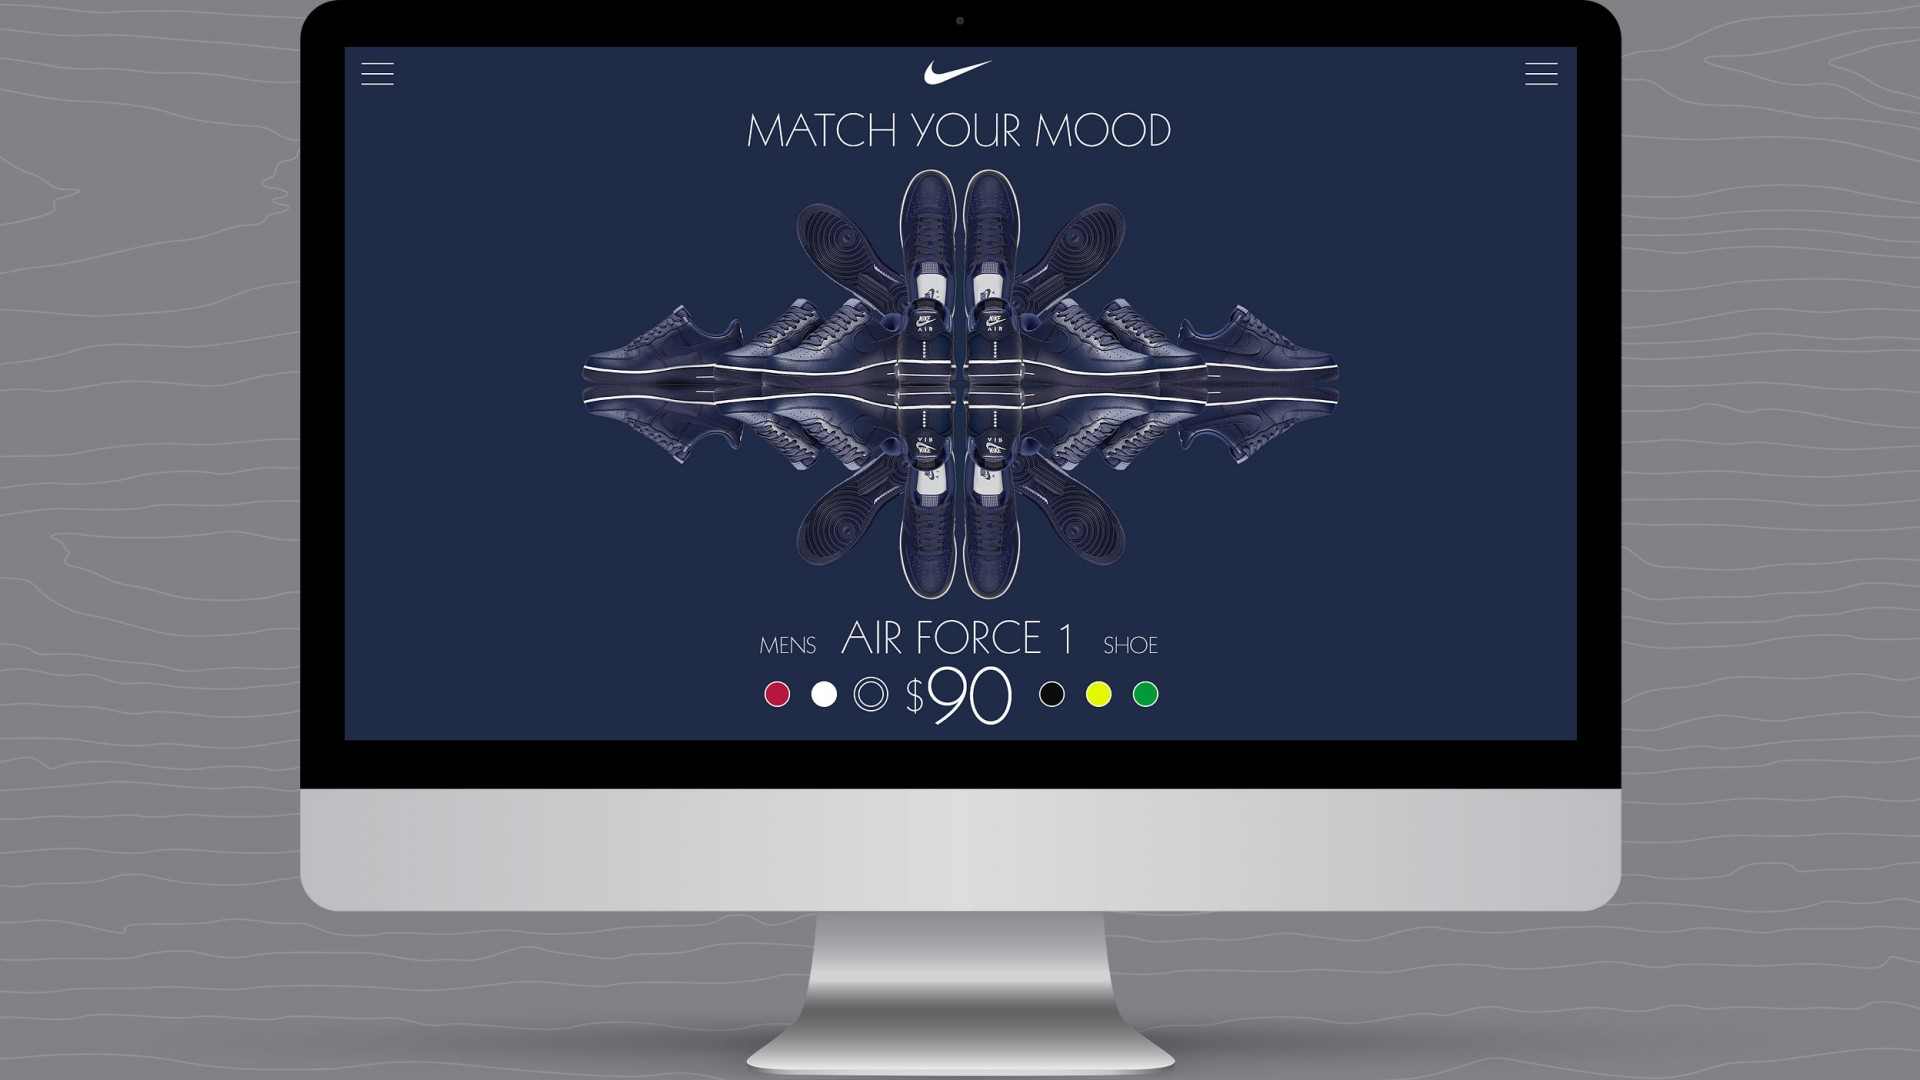 Match Your Mood, Nike UX/UI, desktop view blue shoe view.